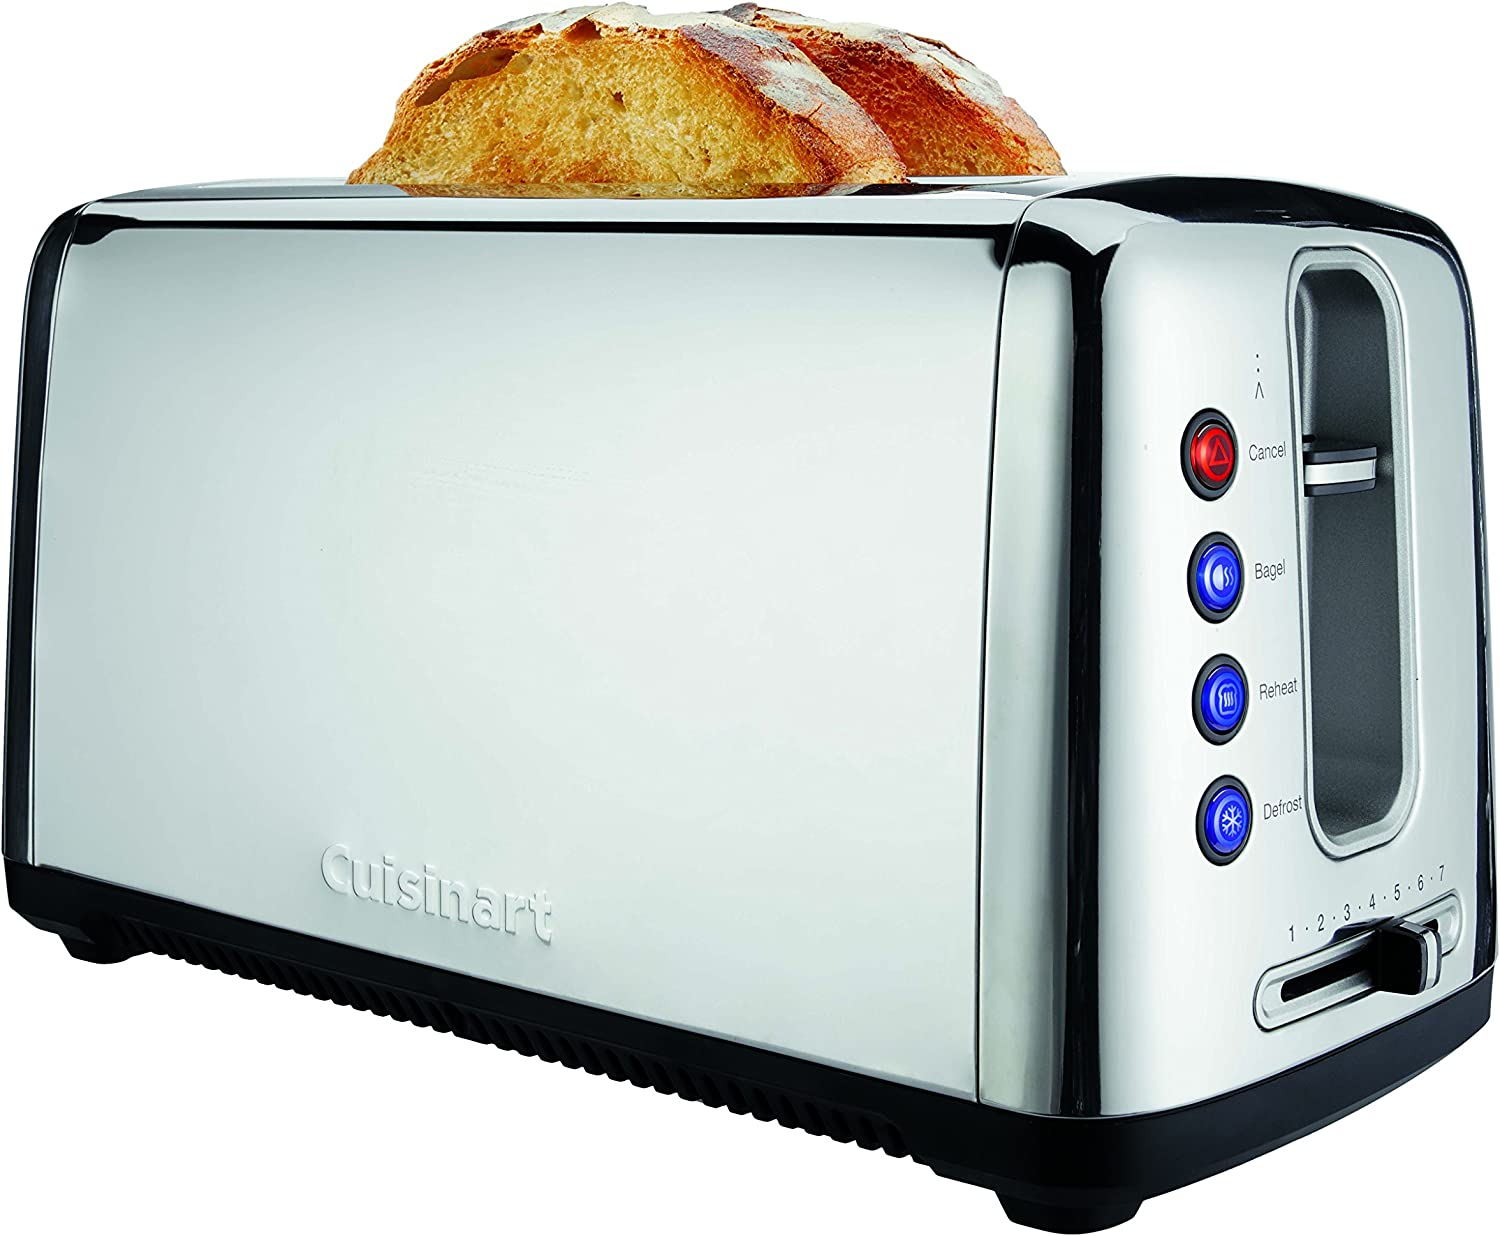 Cuisinart CPT-2400P1 Bakery Artisan Bread Toaster, 2 Slice, Silver